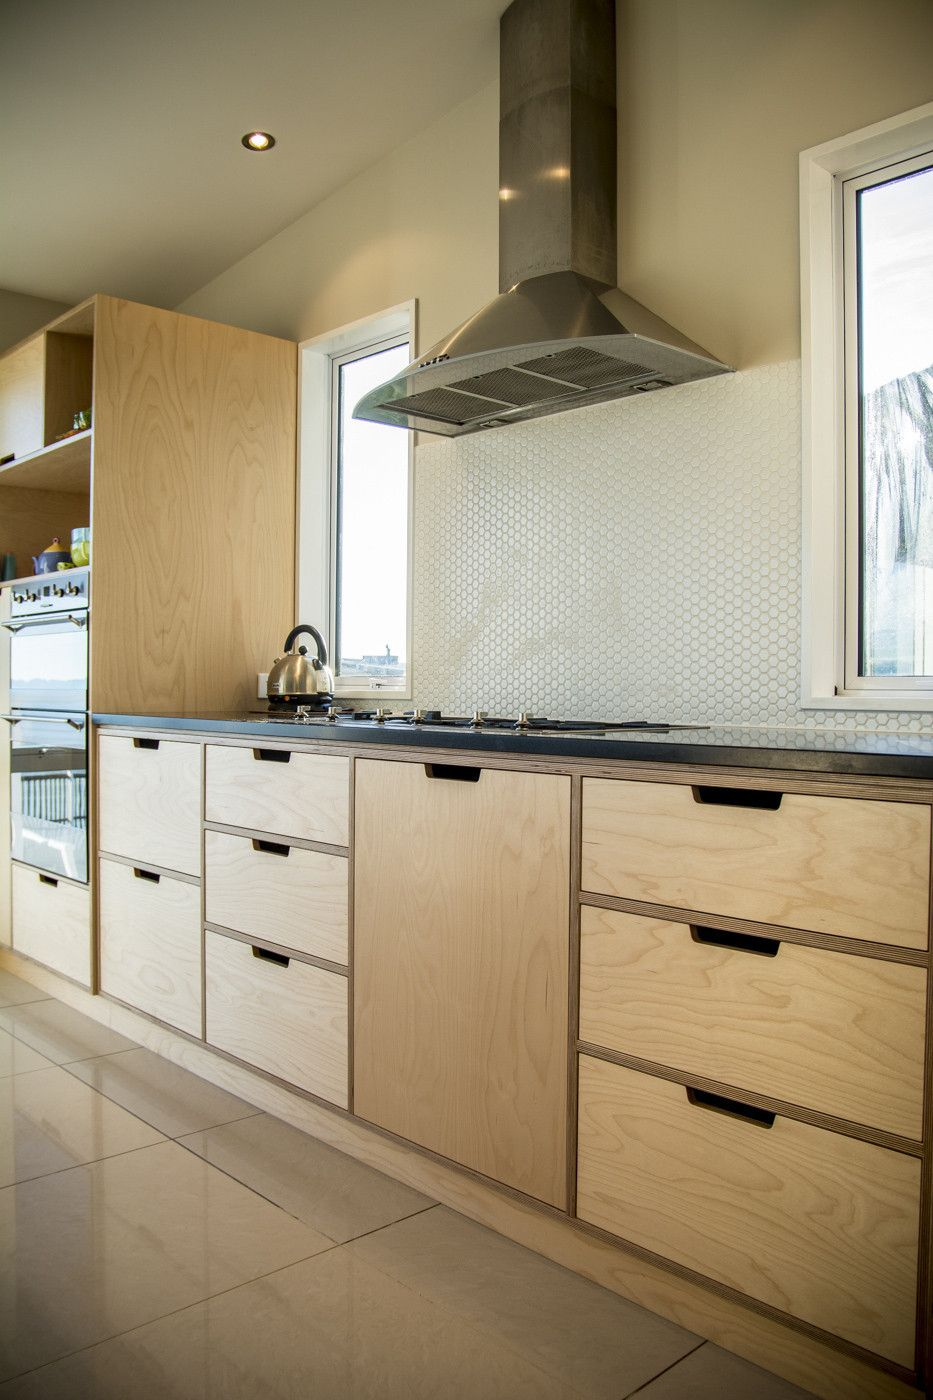 Davies Drive in 2020 Kitchens Plywood kitchen Plywood